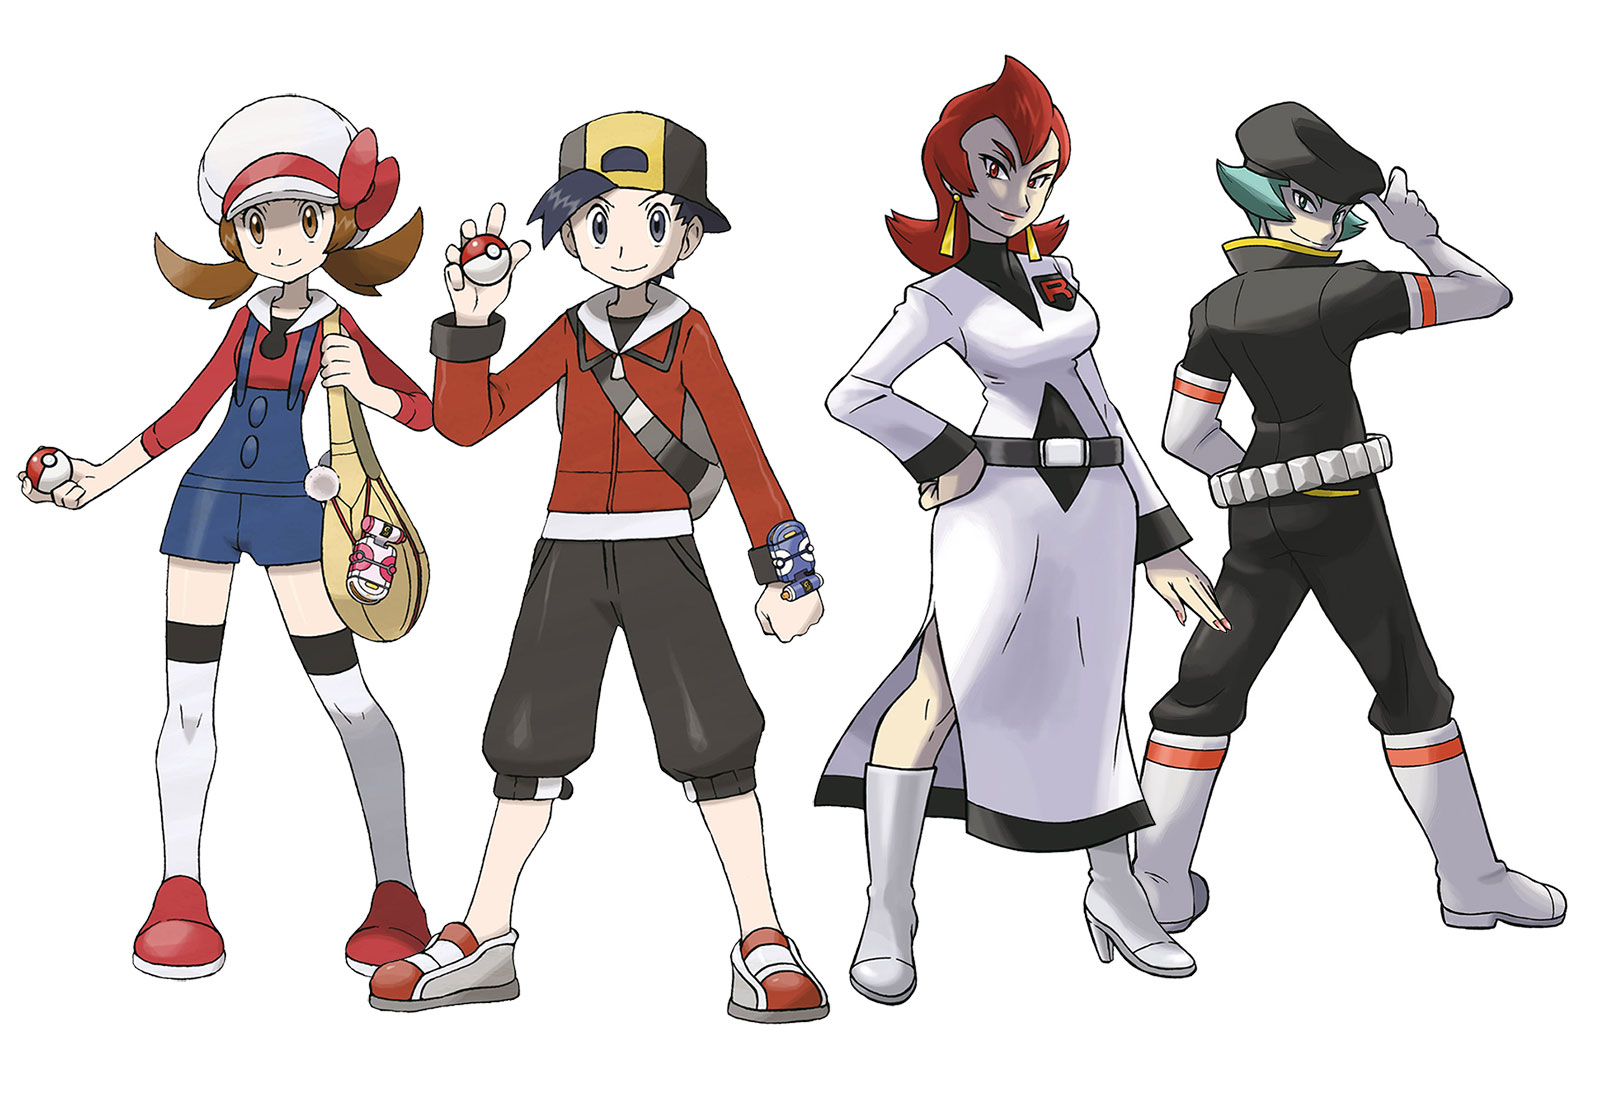 Pokémon HeartGold and SoulSilver Concept Art & Characters